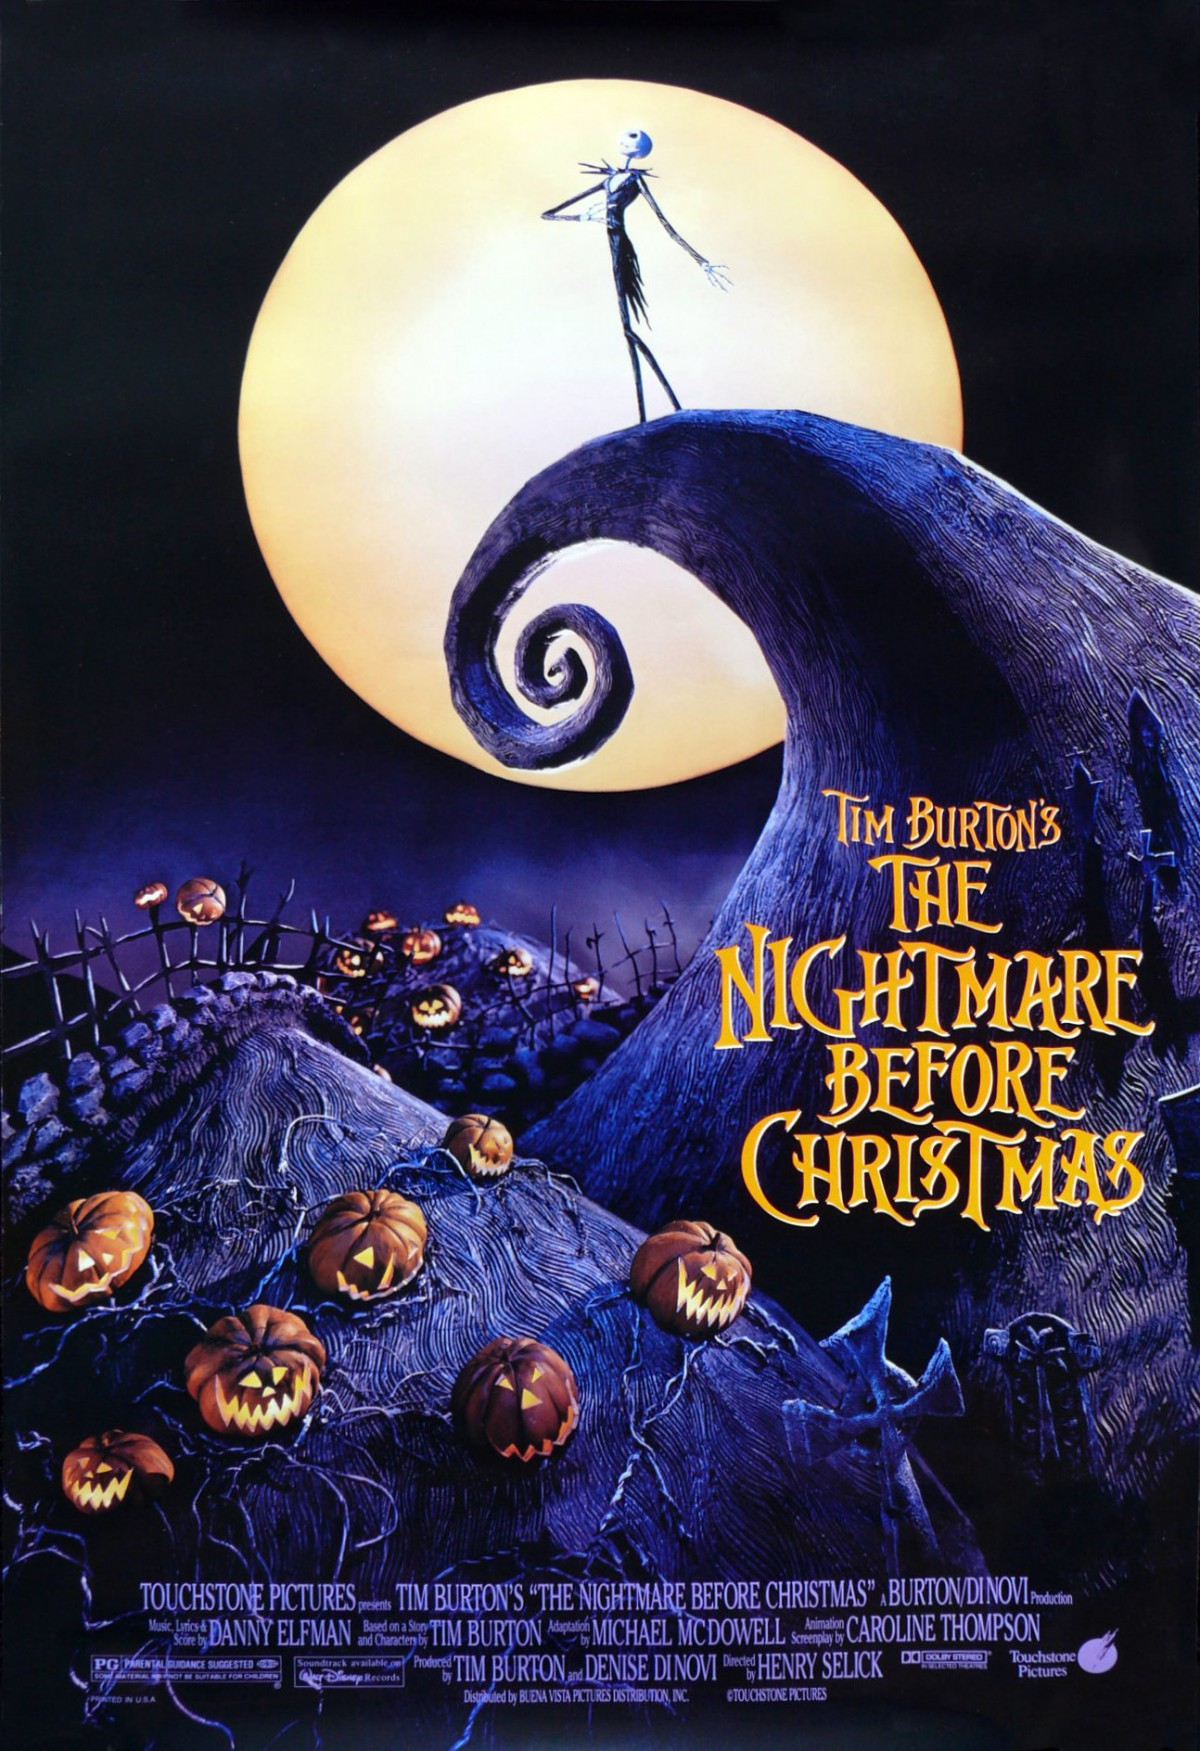 93. The Nightmare Before Christmas (1993)